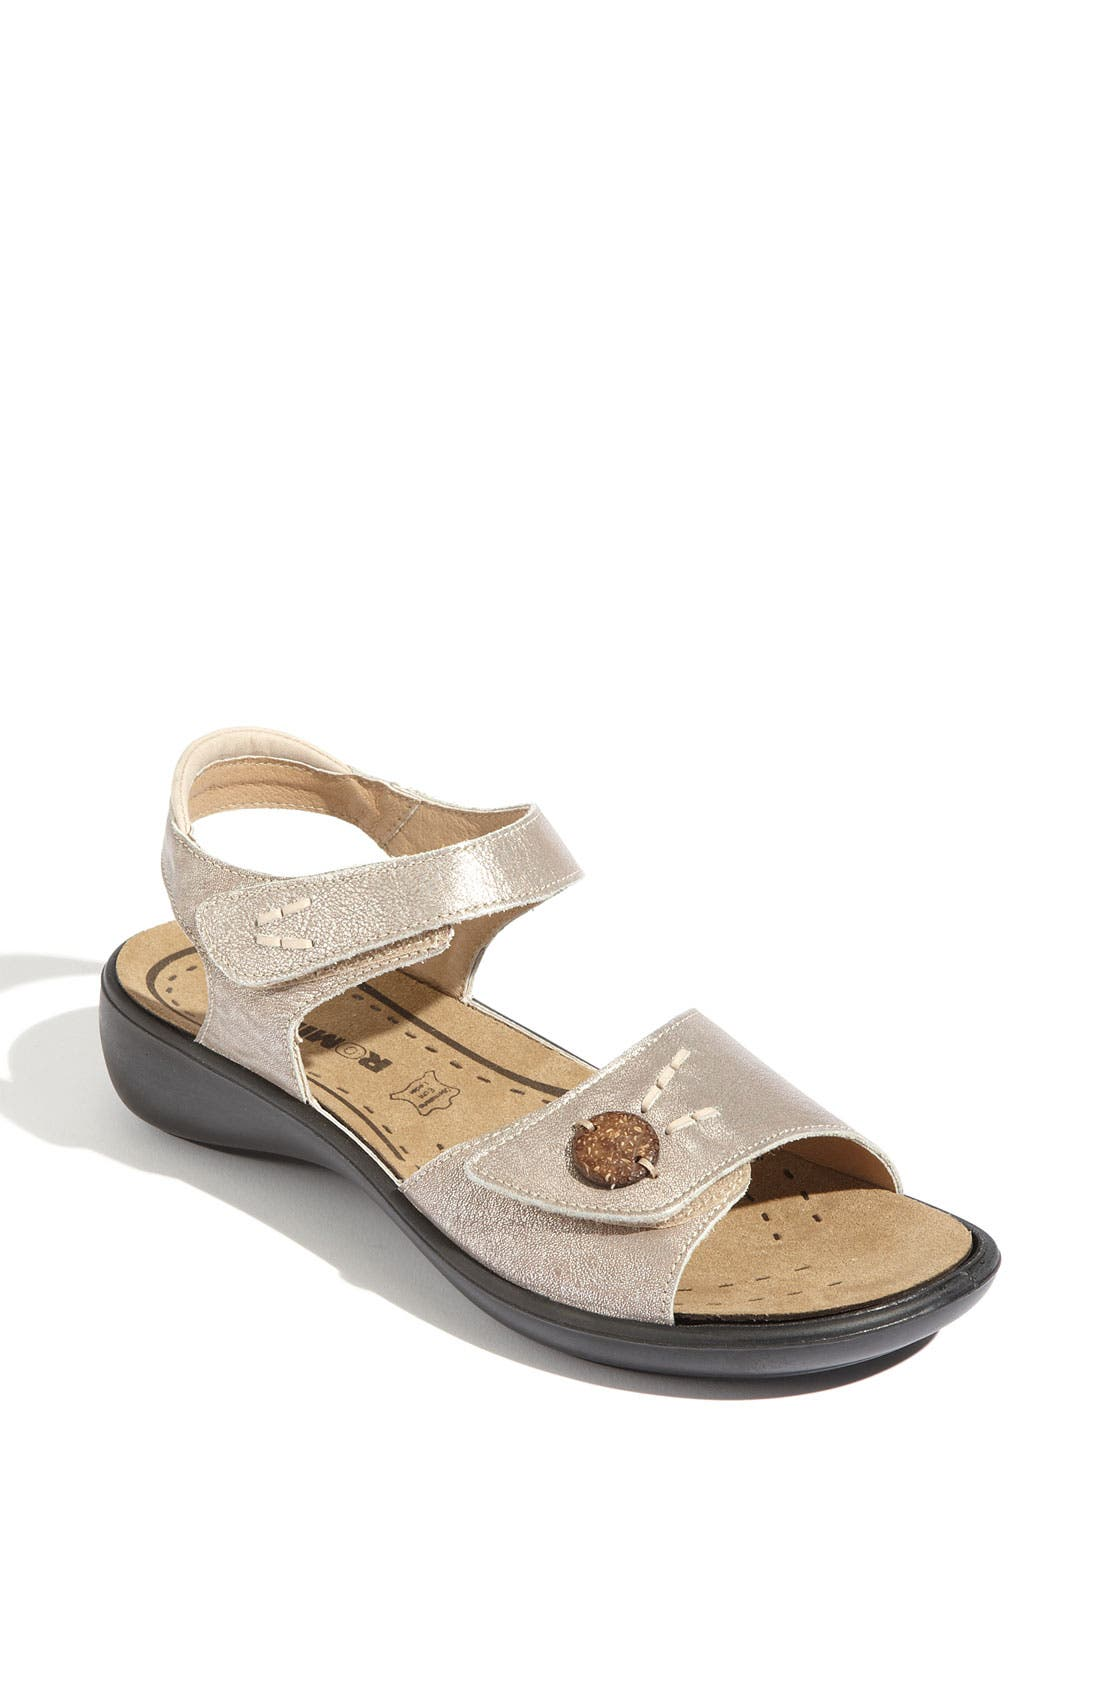 Alternate Image 1 Selected - Romika® 'Ibiza 34' Sandal